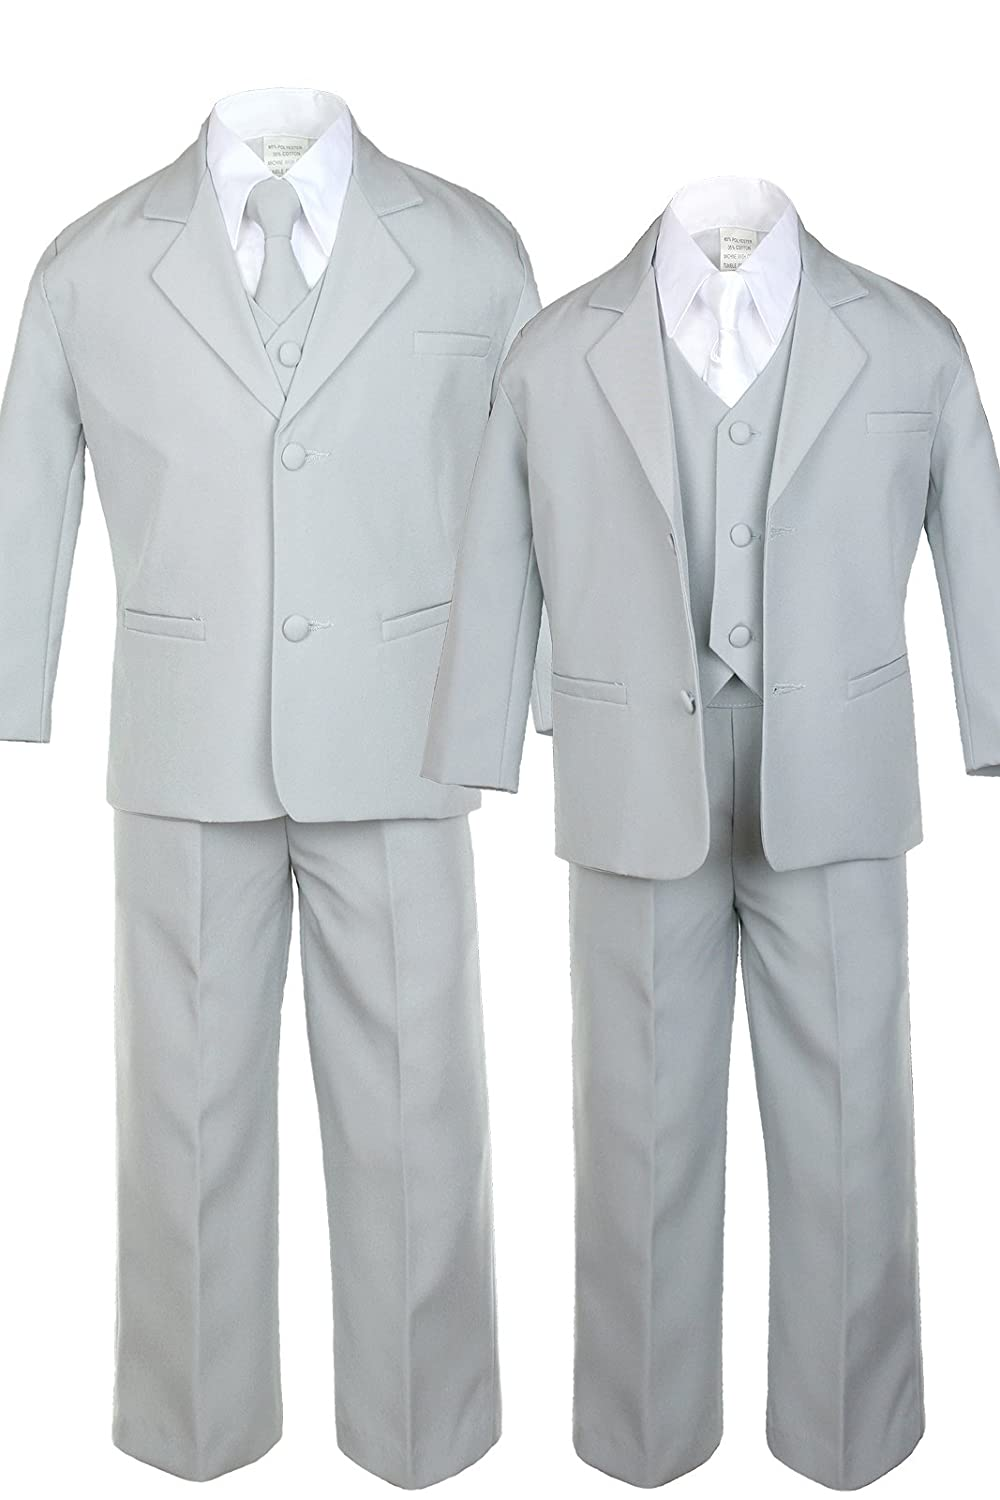 6pc Boy Gray Vest Formal Tuxedo Suits with Satin White Necktie Baby to Teen